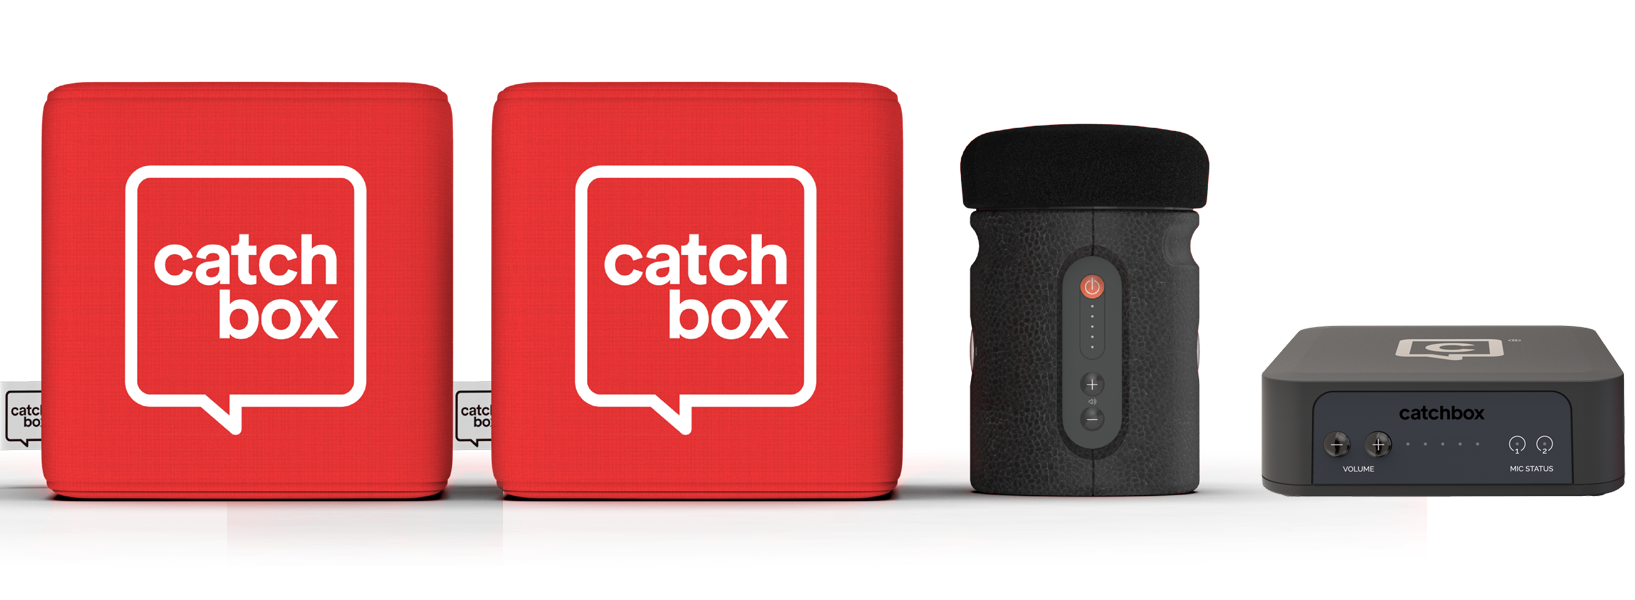 catchbox plus 2